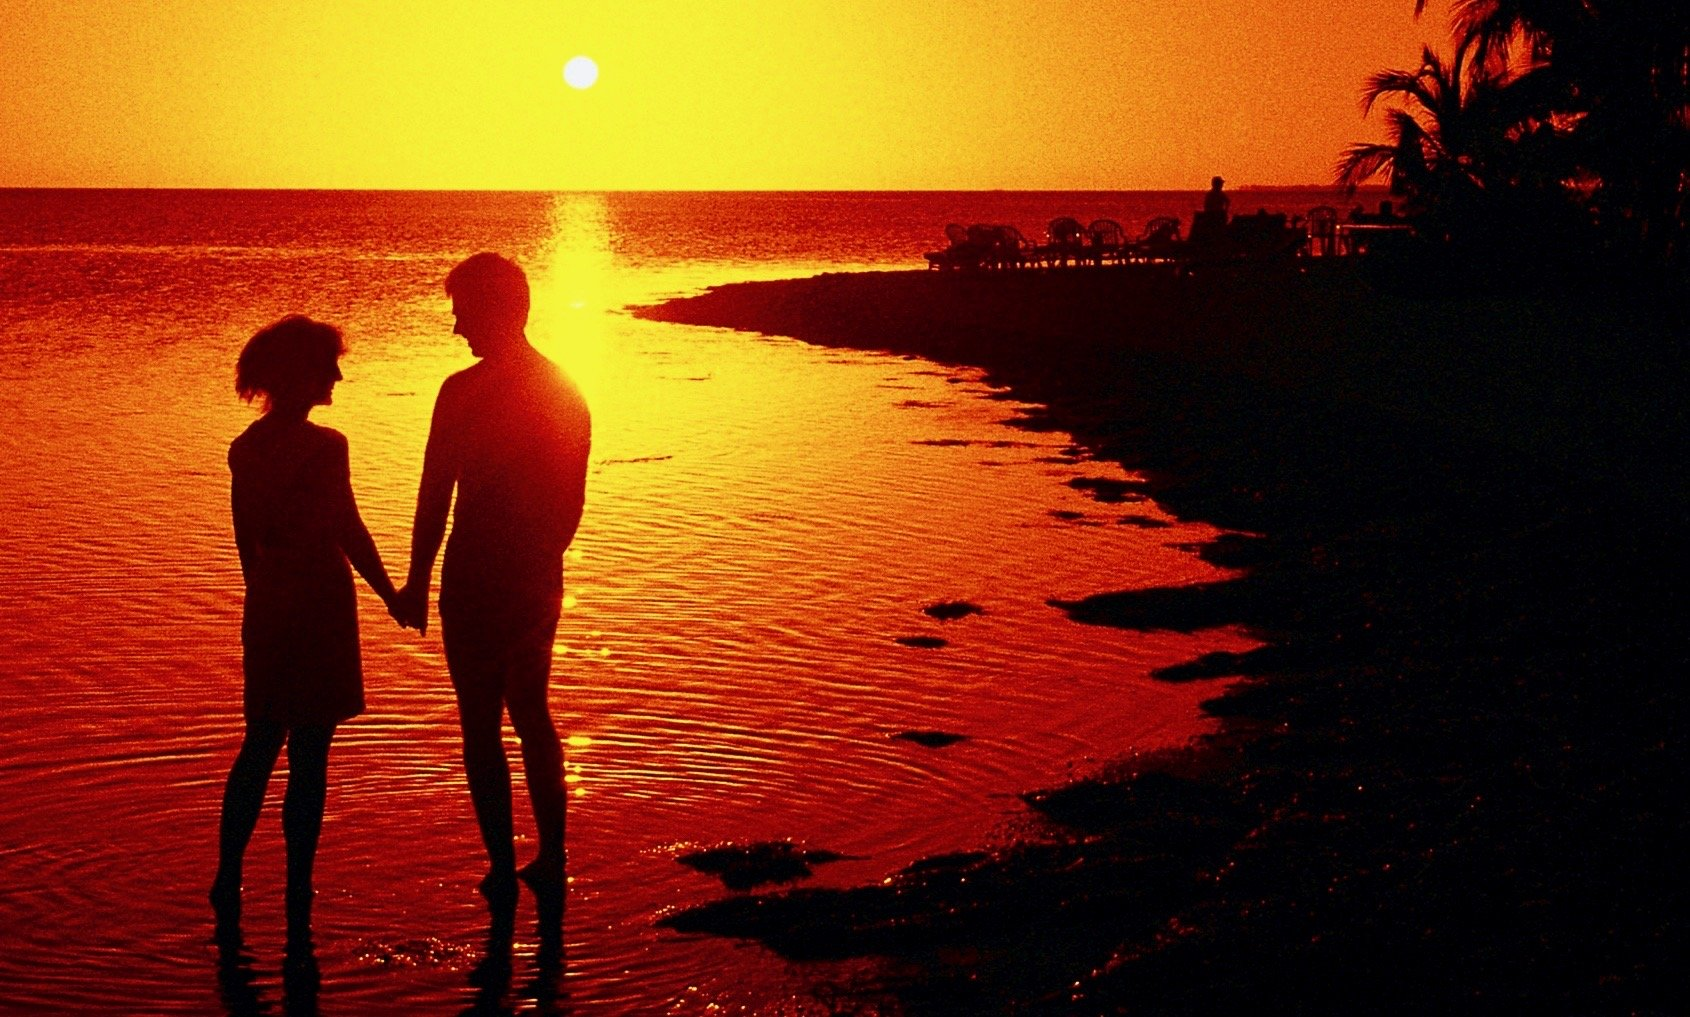 Silhouette of a man and woman holding hands on the beach at sunset